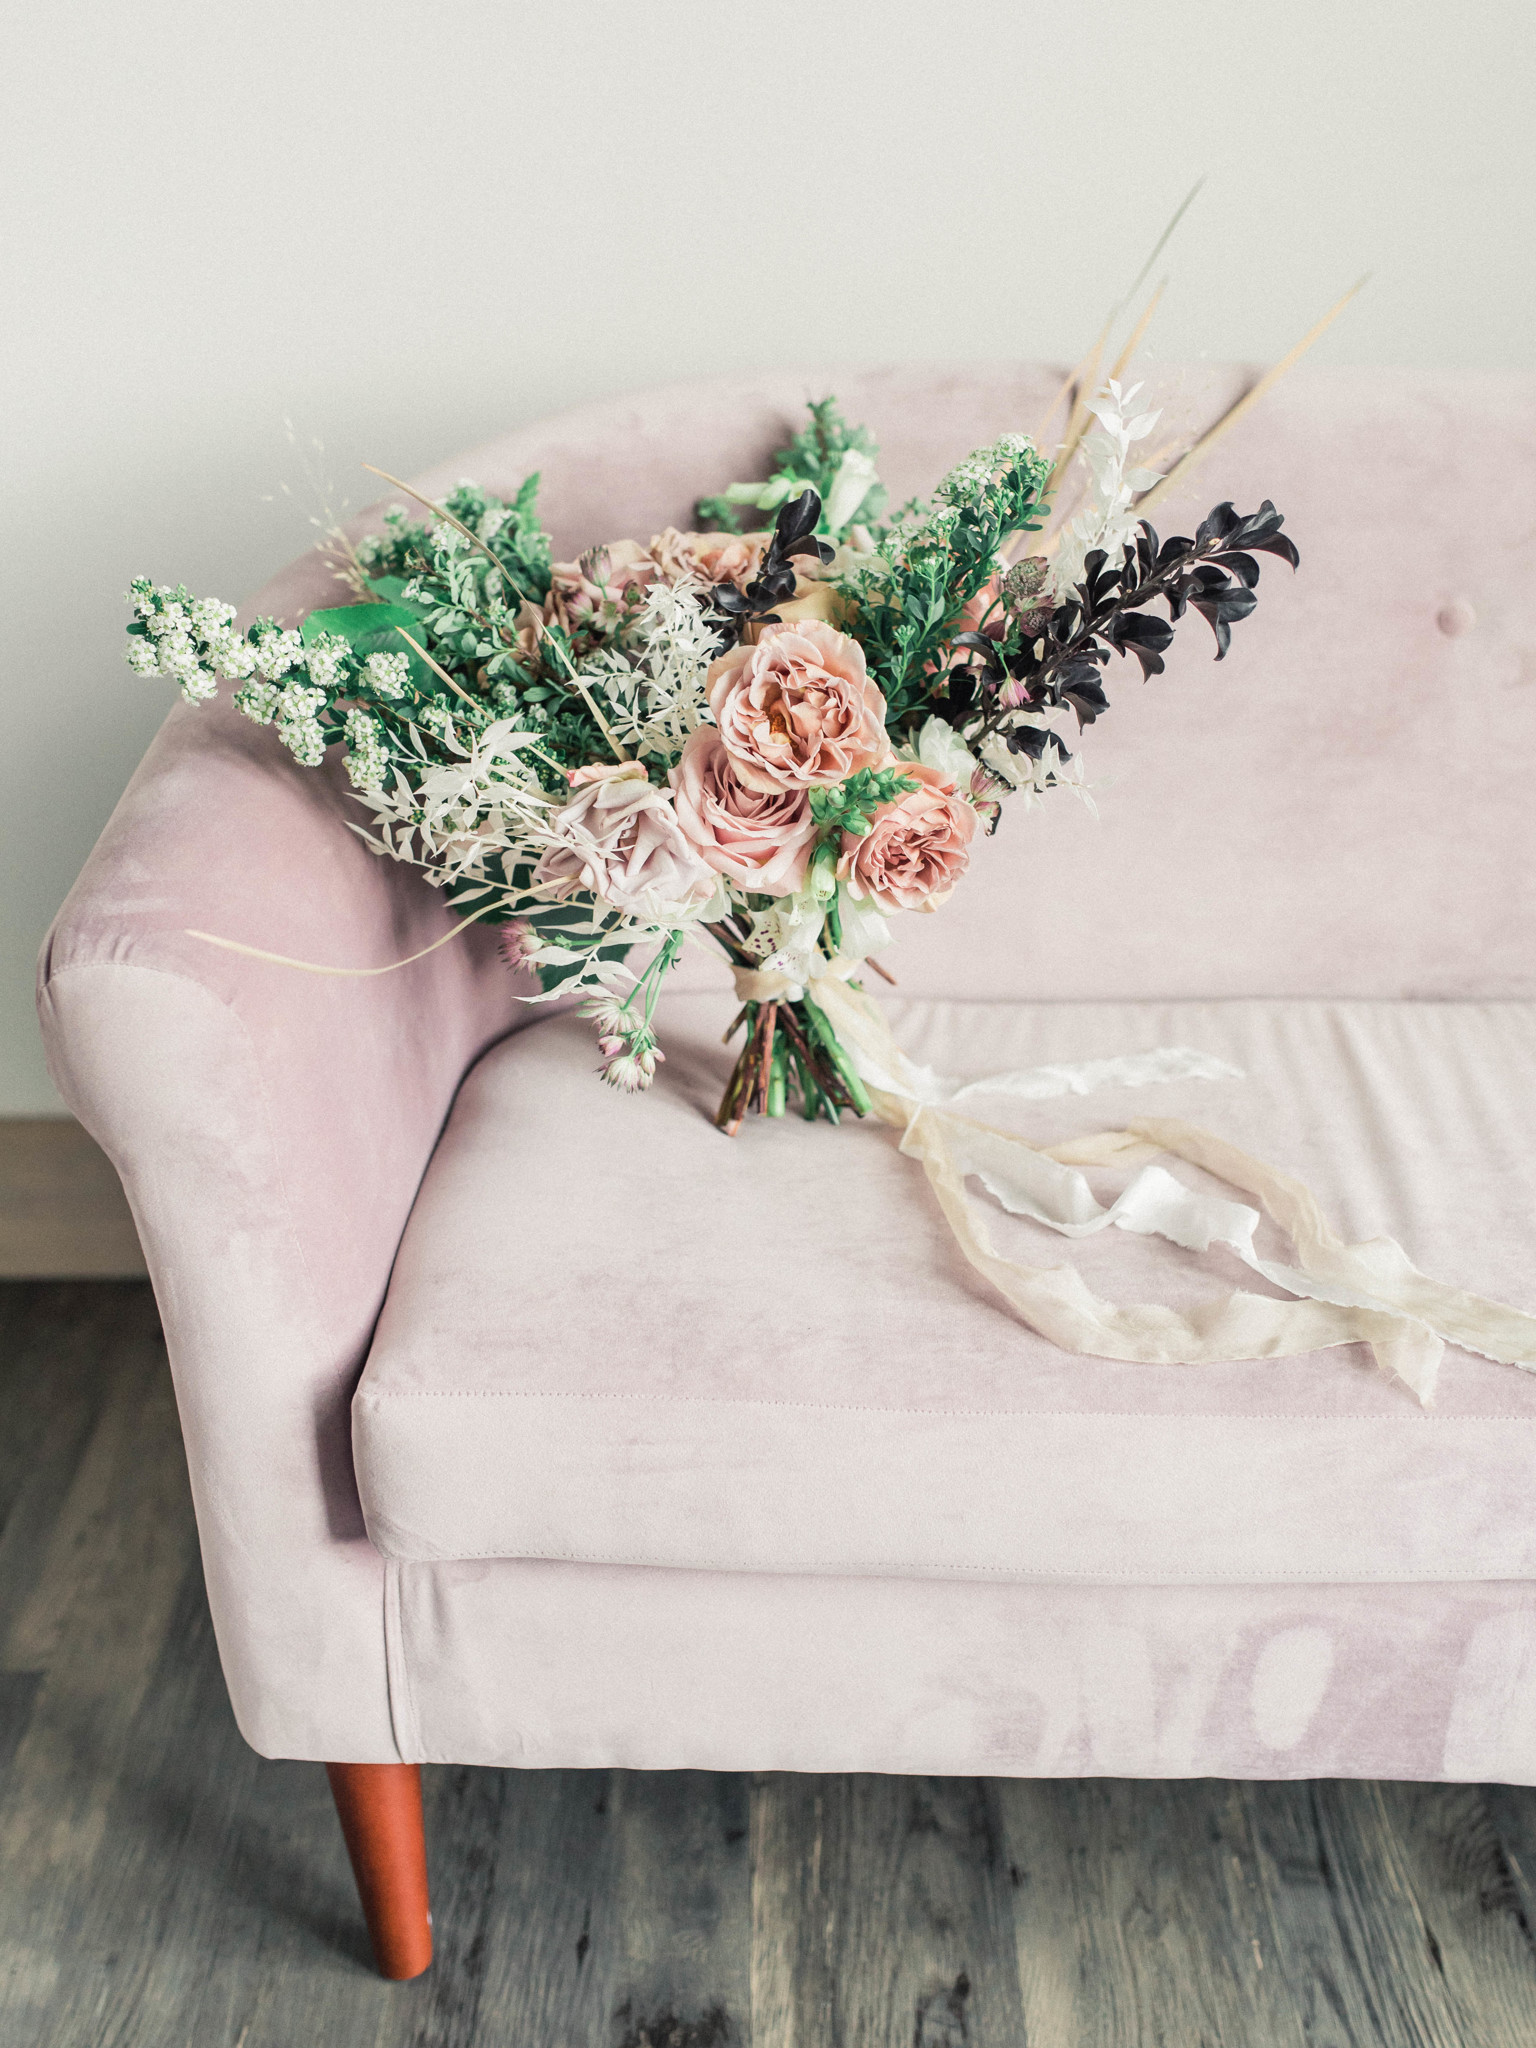 Mauve wedding bouquet on mauve settee: Whimsical mauve wedding inspiration on Alexa Kay Events. See more romantic wedding ideas at alexakayevents.com!